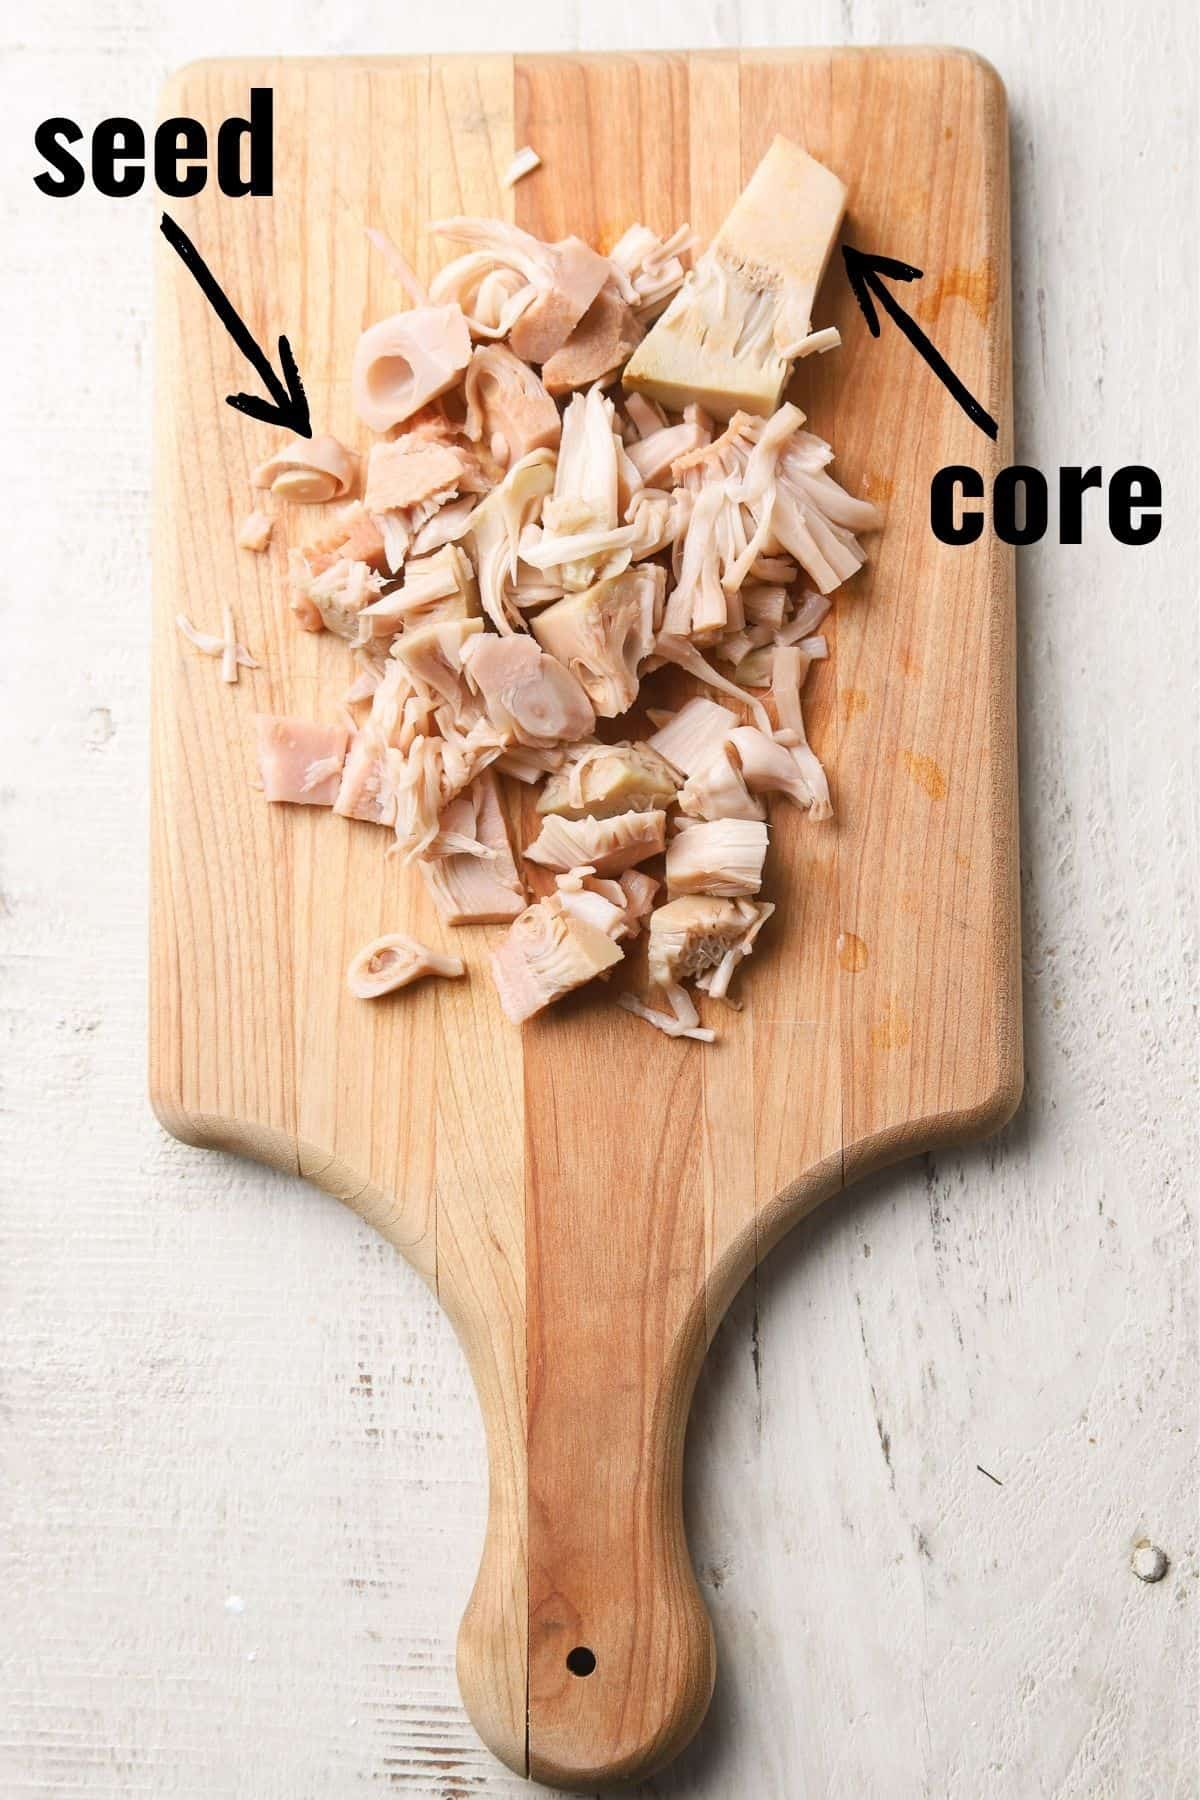 Graphic Showing Chopped Jackfruit on a Cutting Board with Labels and Arrows Pointing To Seeds and Core